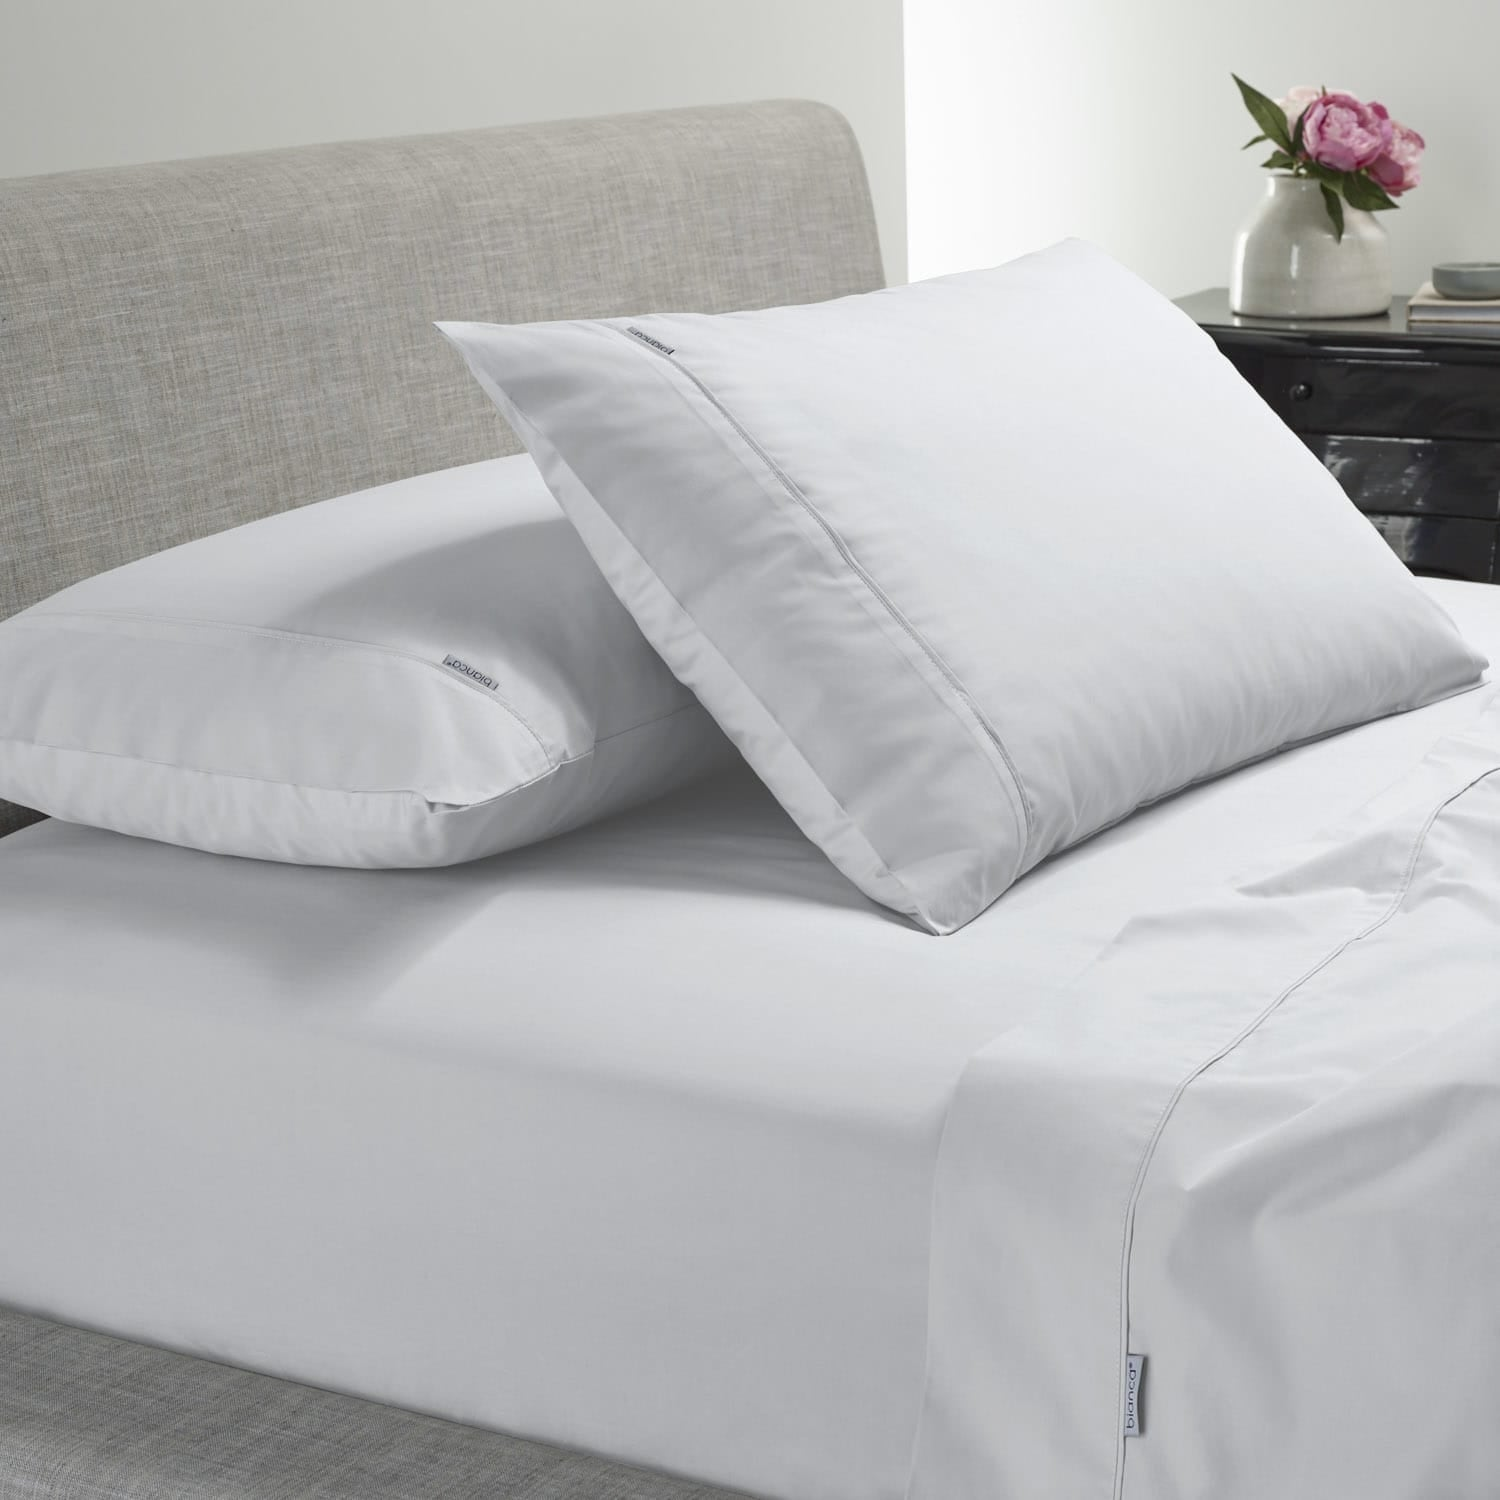 Heston Cotton Percale Sheet Set